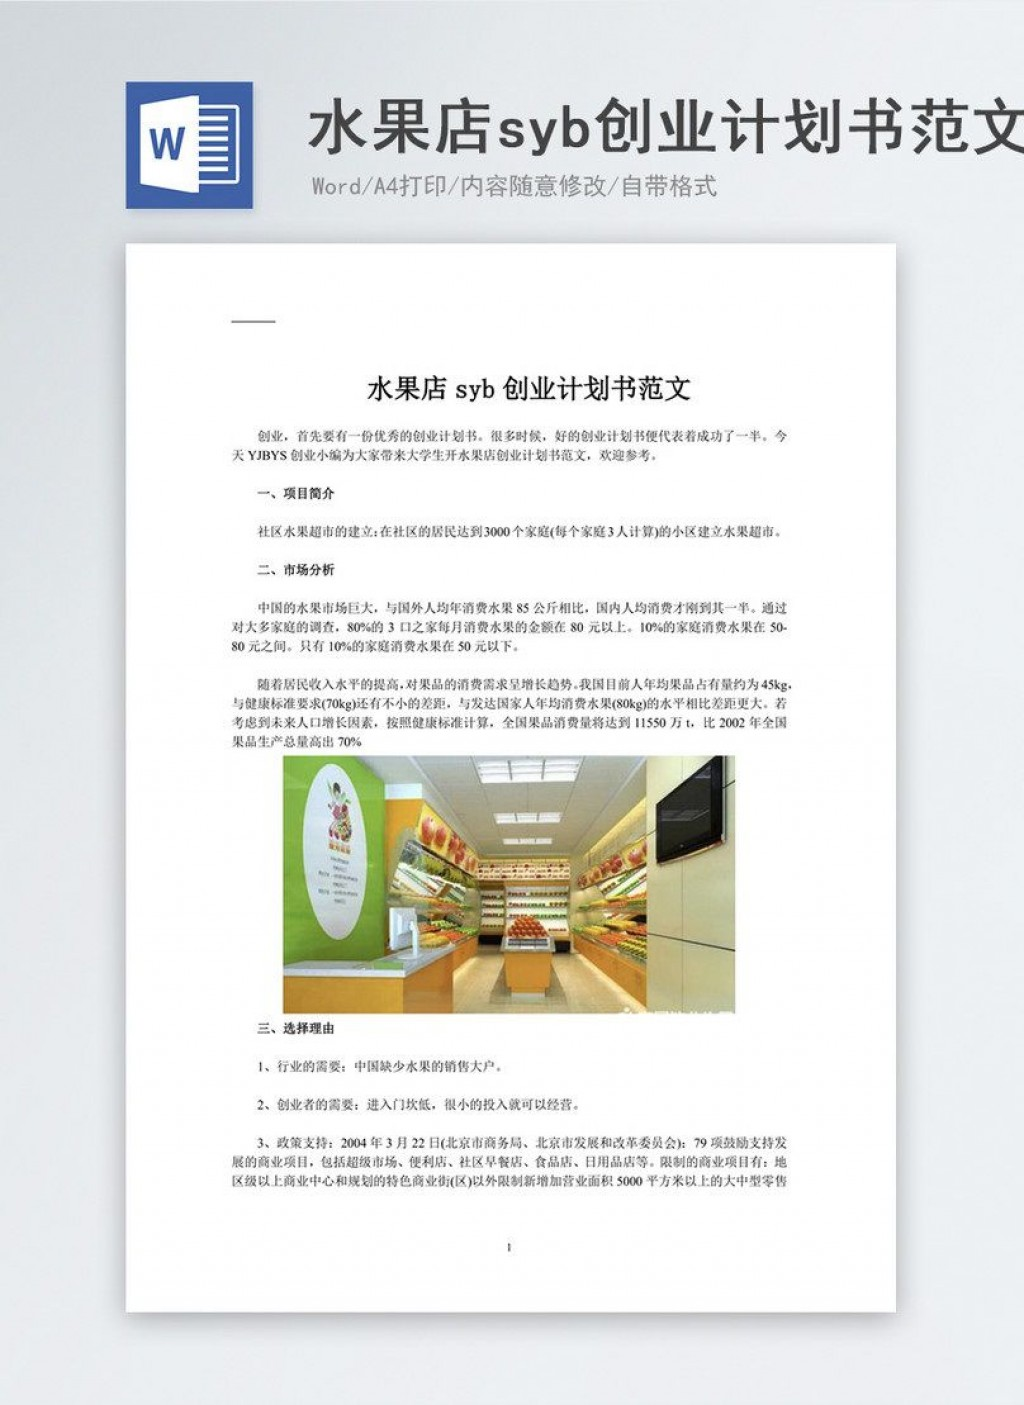 002 Impressive Free Busines Plan Template Word High Resolution  Download Document Sample DocLarge